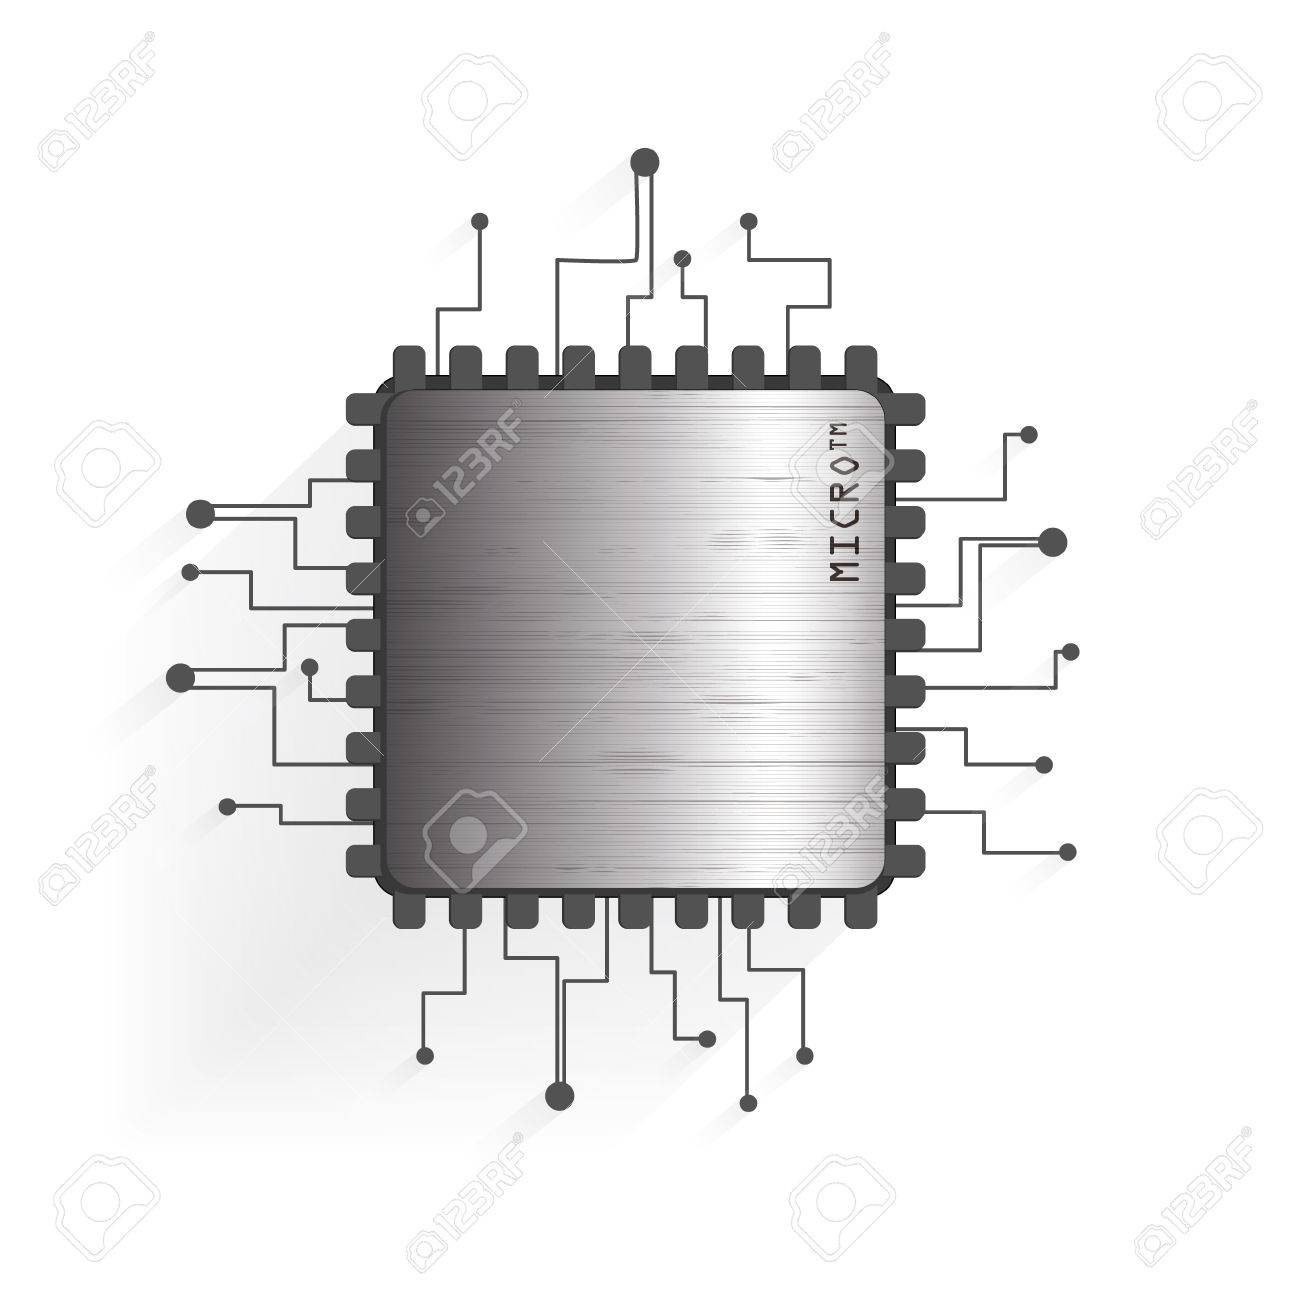 A Schematic Diagram Of The Circuit Electronic Transistor Stock Photos Photo 80076168